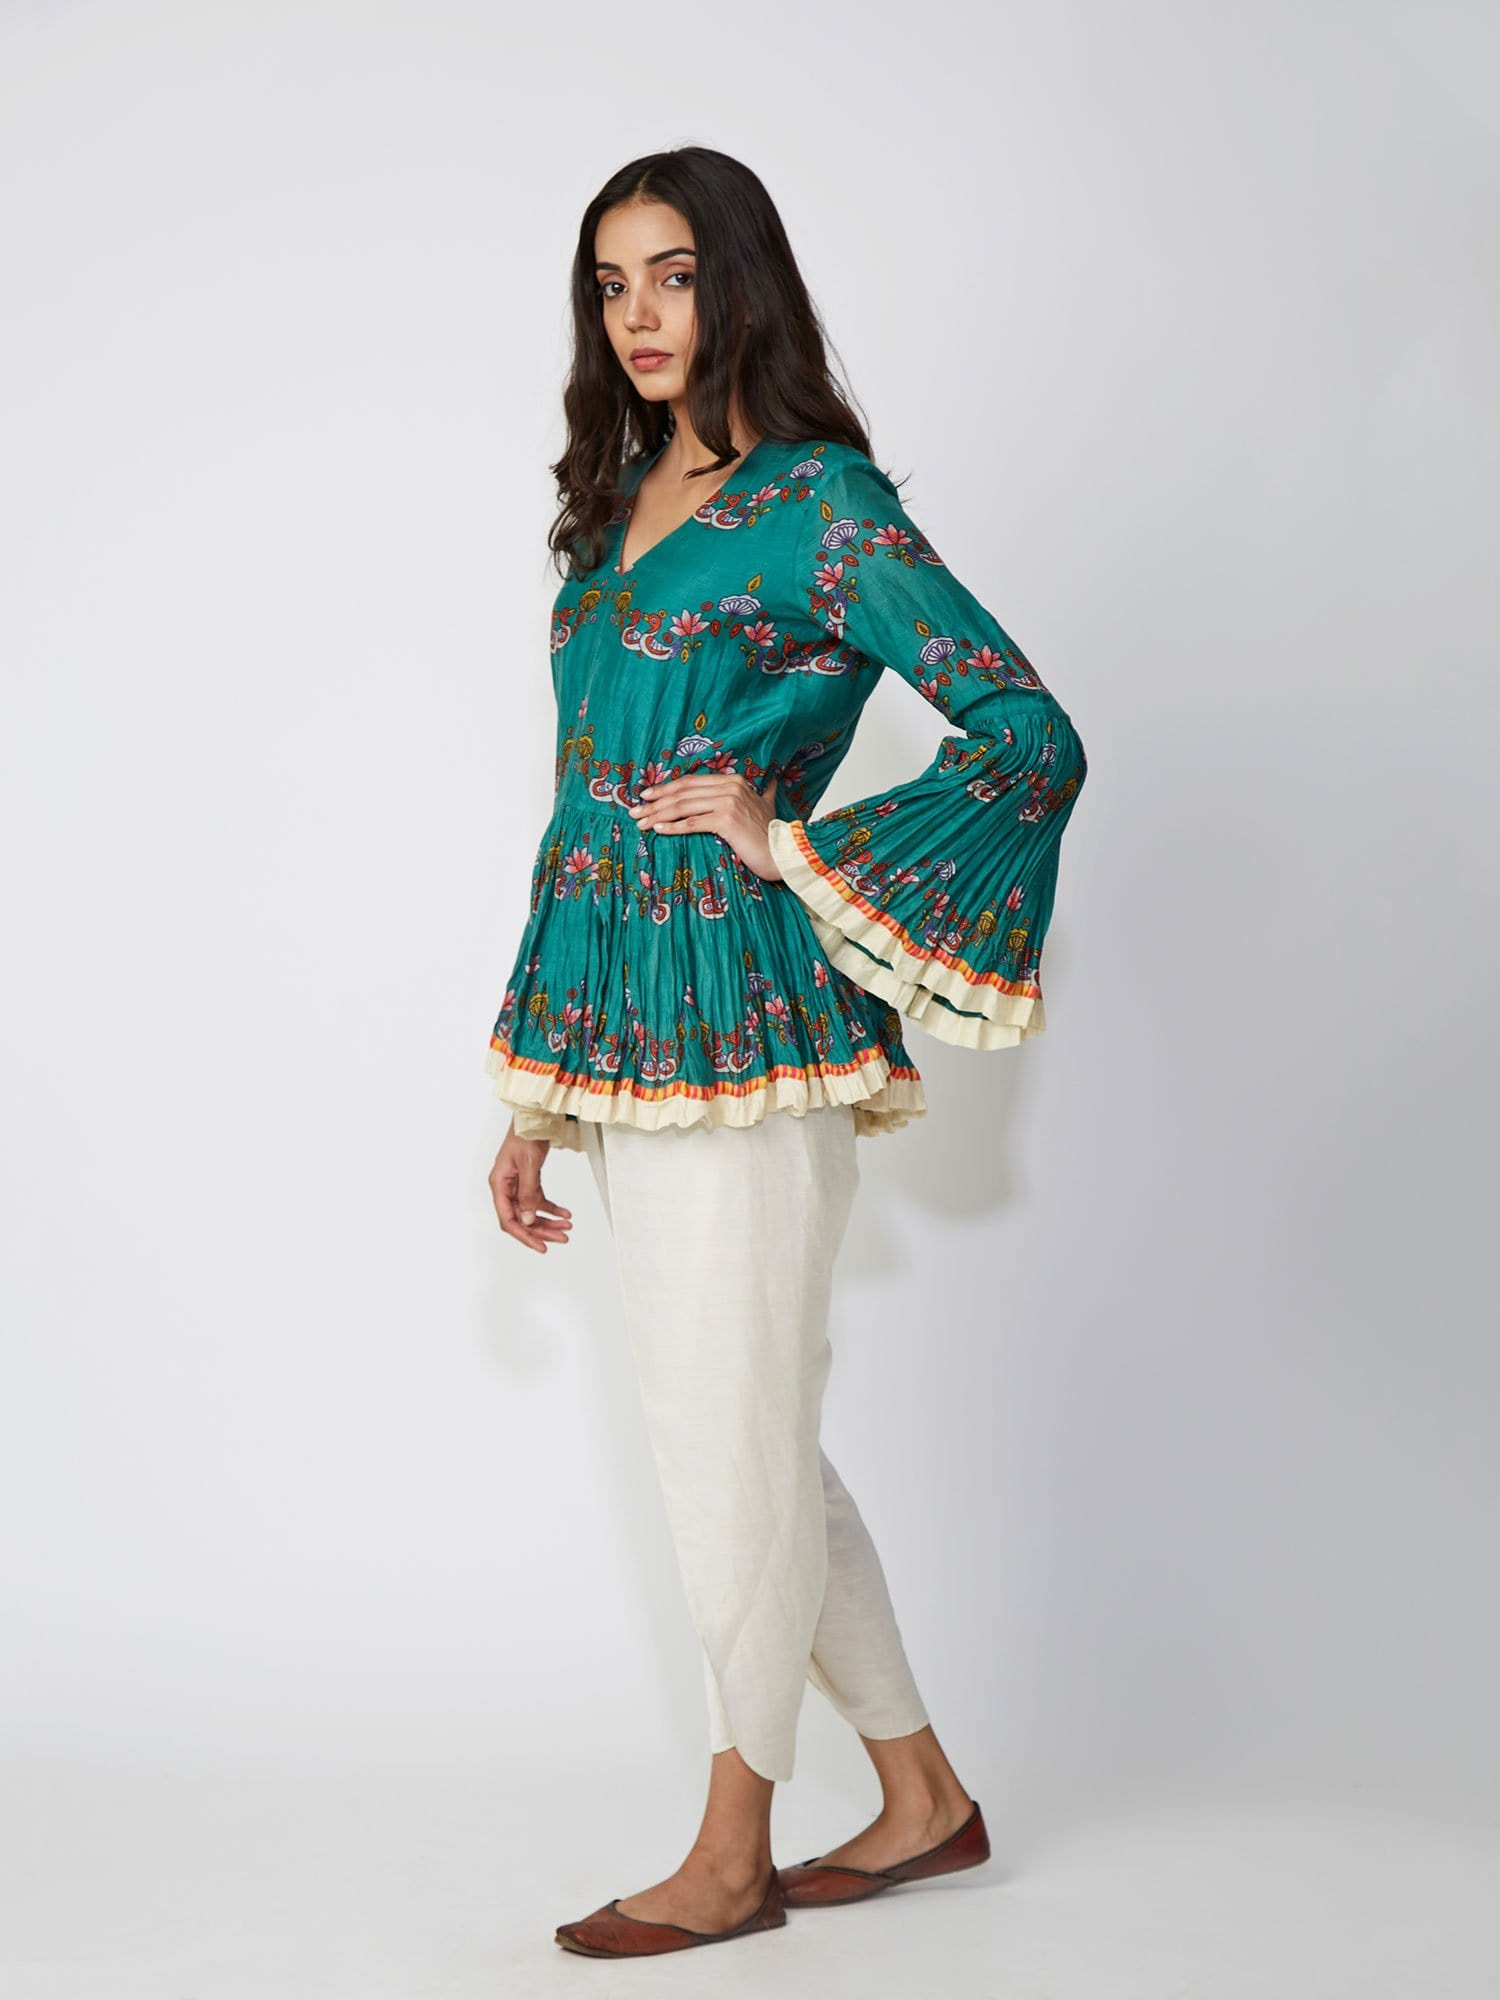 Bundi Teal Scallop Print Peplum Shirt